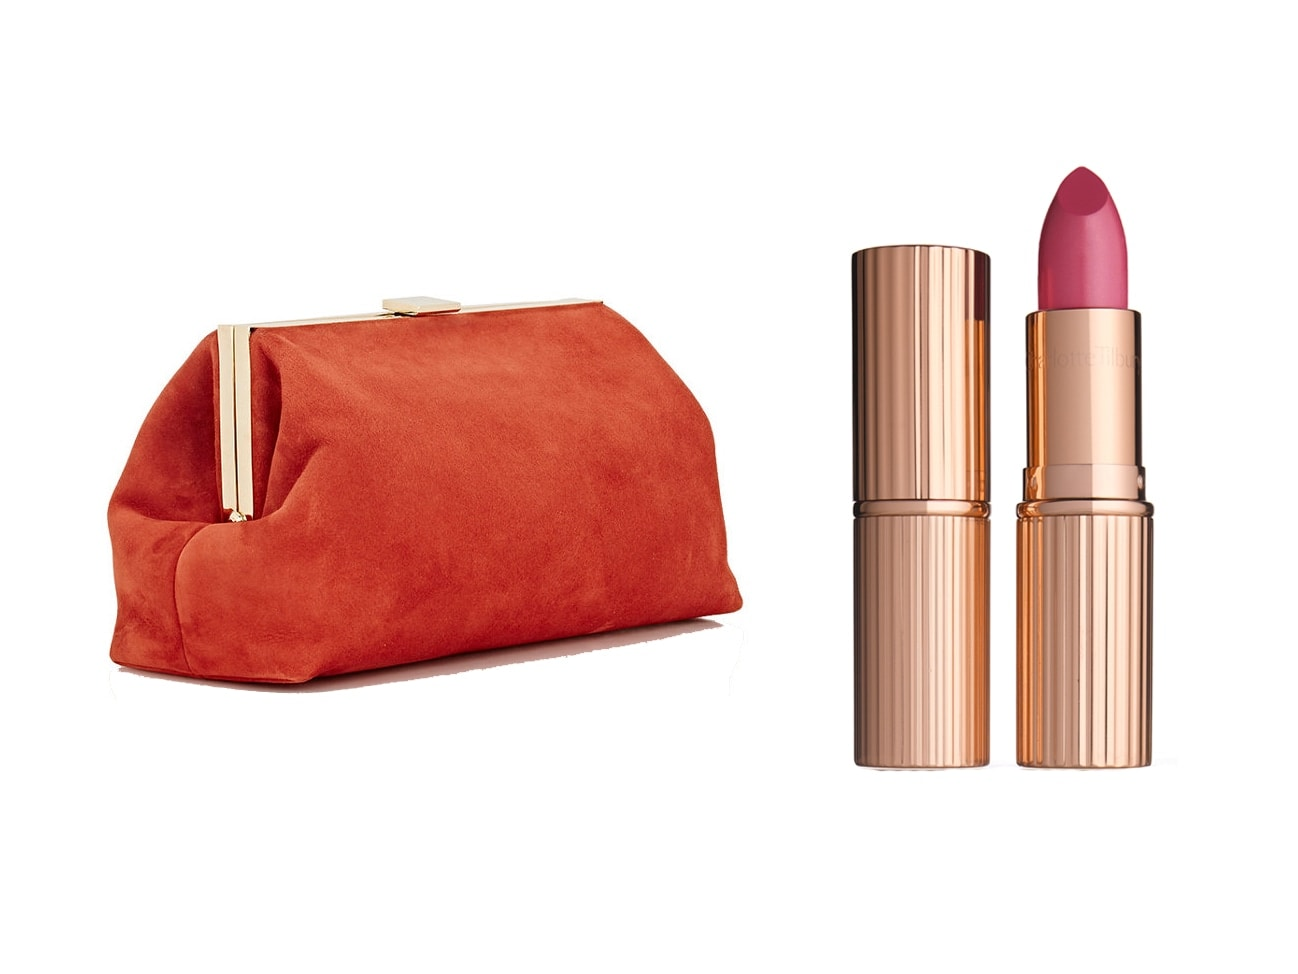 Gorgeous Lipsticks & the Prettiest Clutches to Carry Them in This Valentine's Day